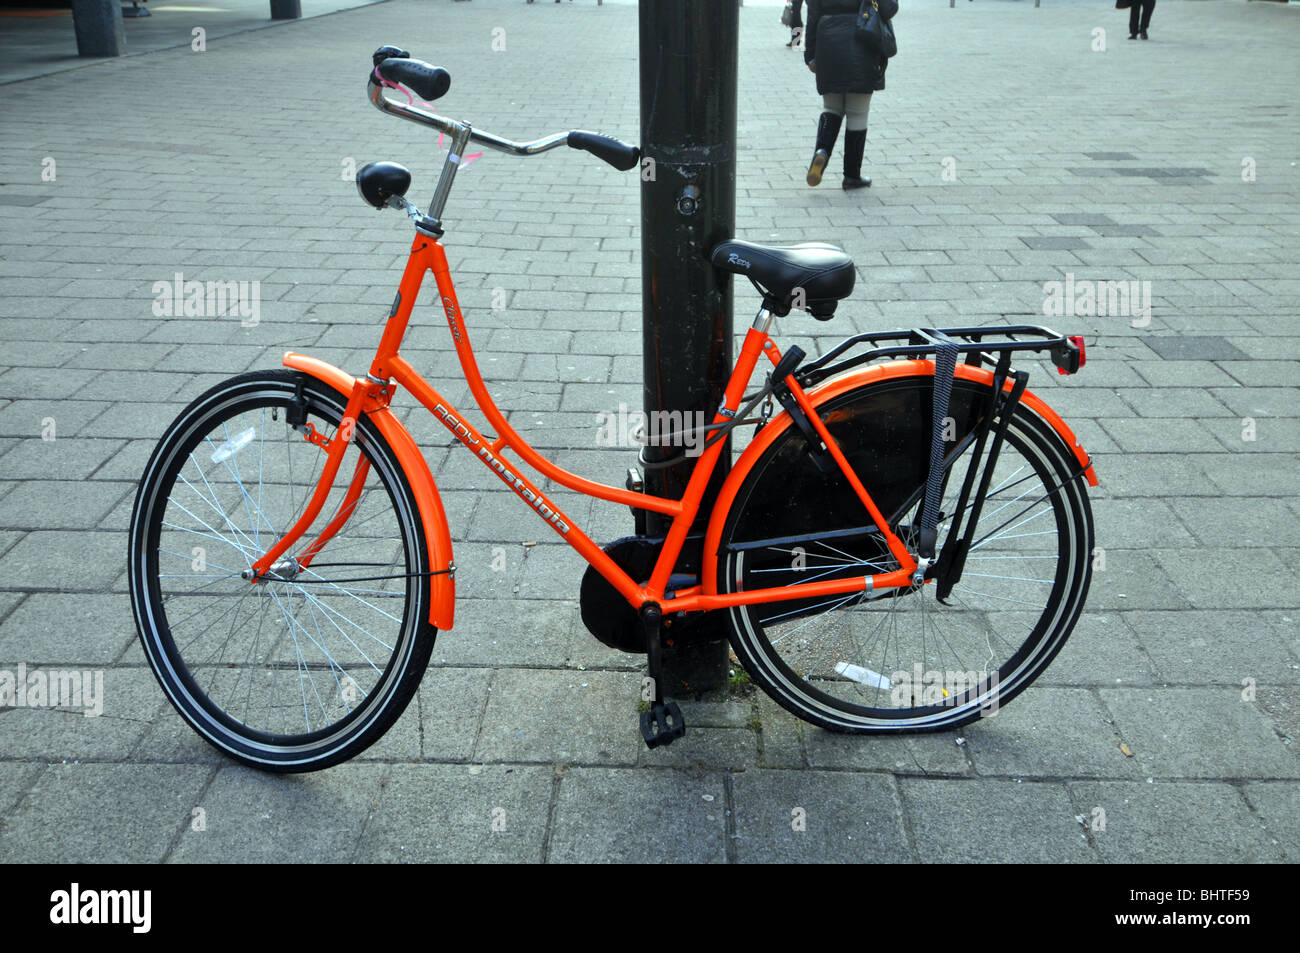 Bicycle locked up in Rotterdam, Holland, Netherlands - Stock Image